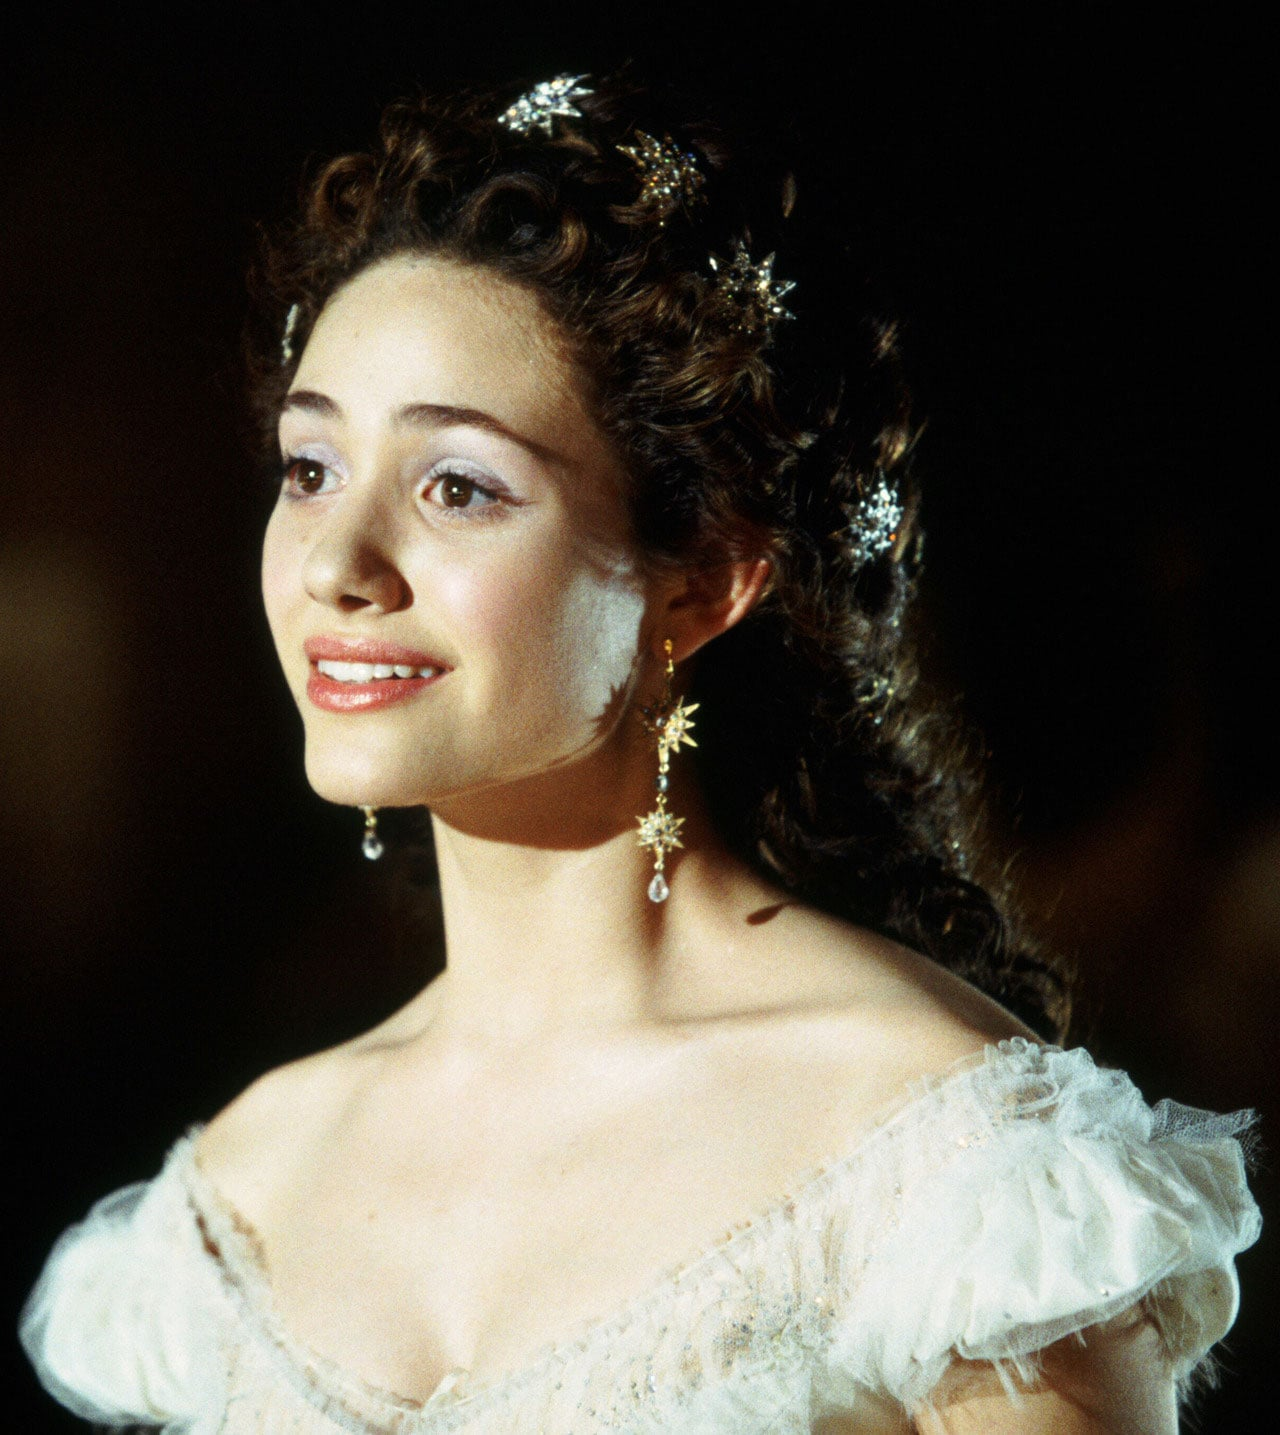 Emmy Rossum in The Phantom of the Opera | 25 Gorgeous ... Emmy Rossum Wallpaper Christine